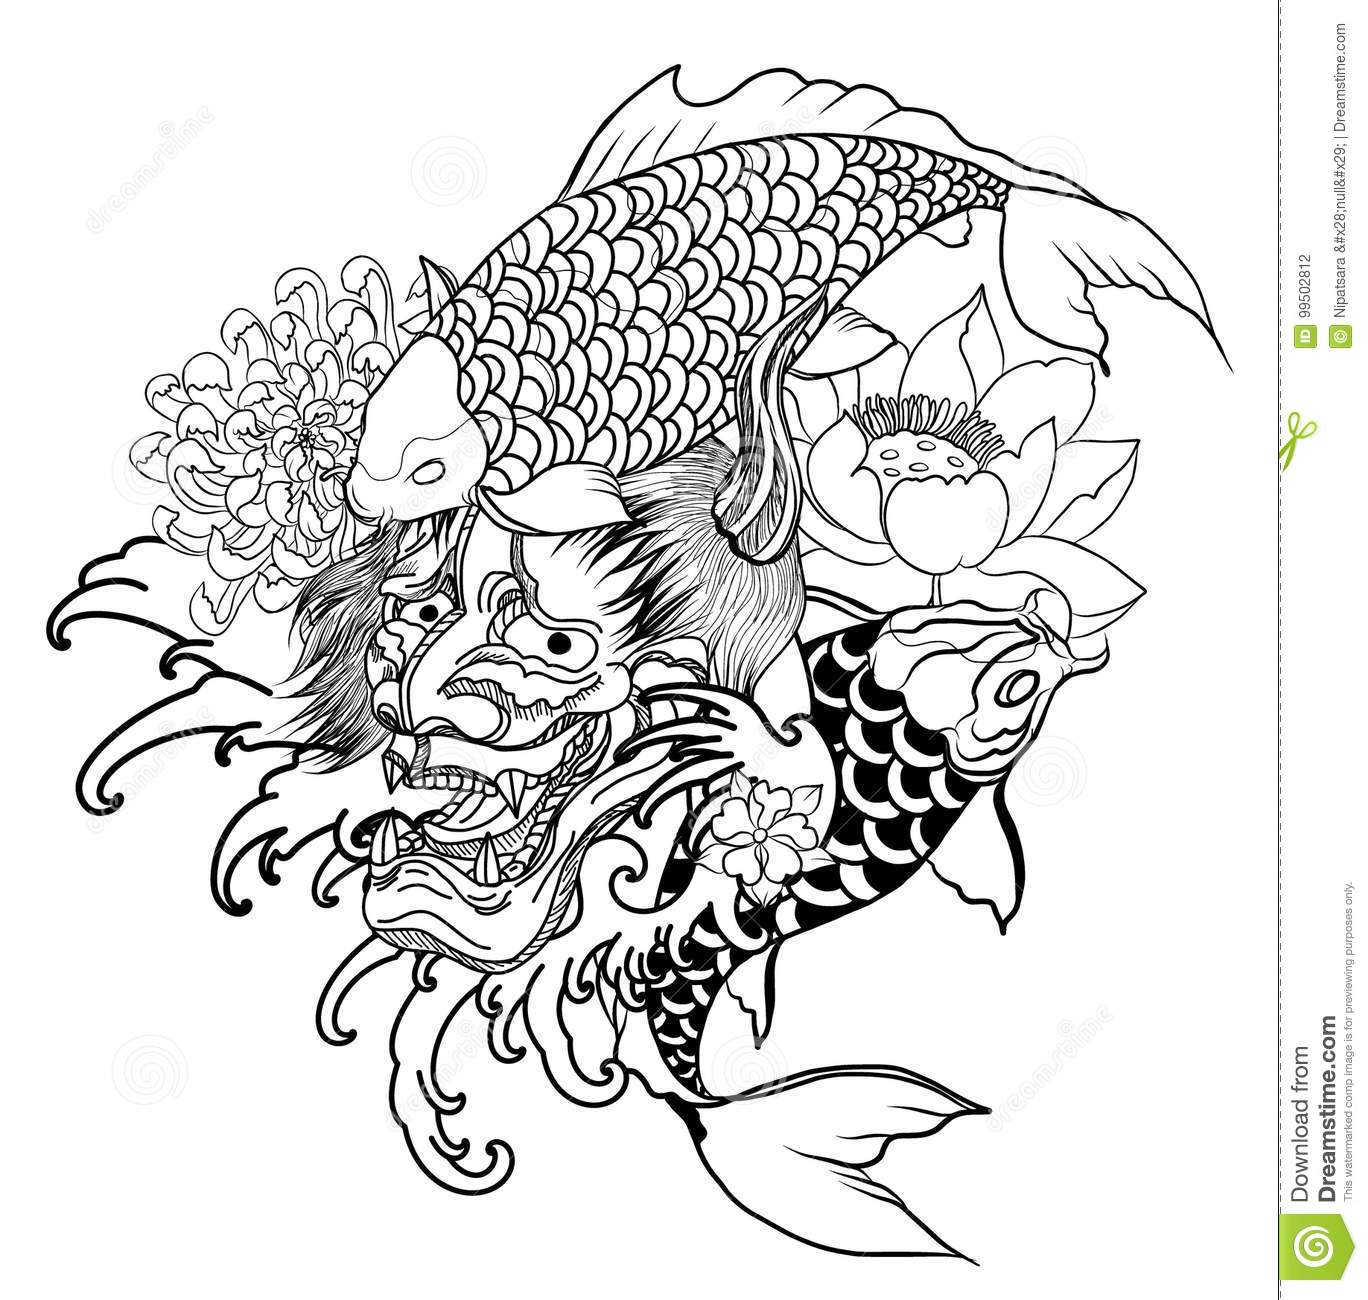 03831e1fc7a76 Japanese Demon mask and carp fish tattoo design.hand drawn Oni mask with  chrysanthemum flower